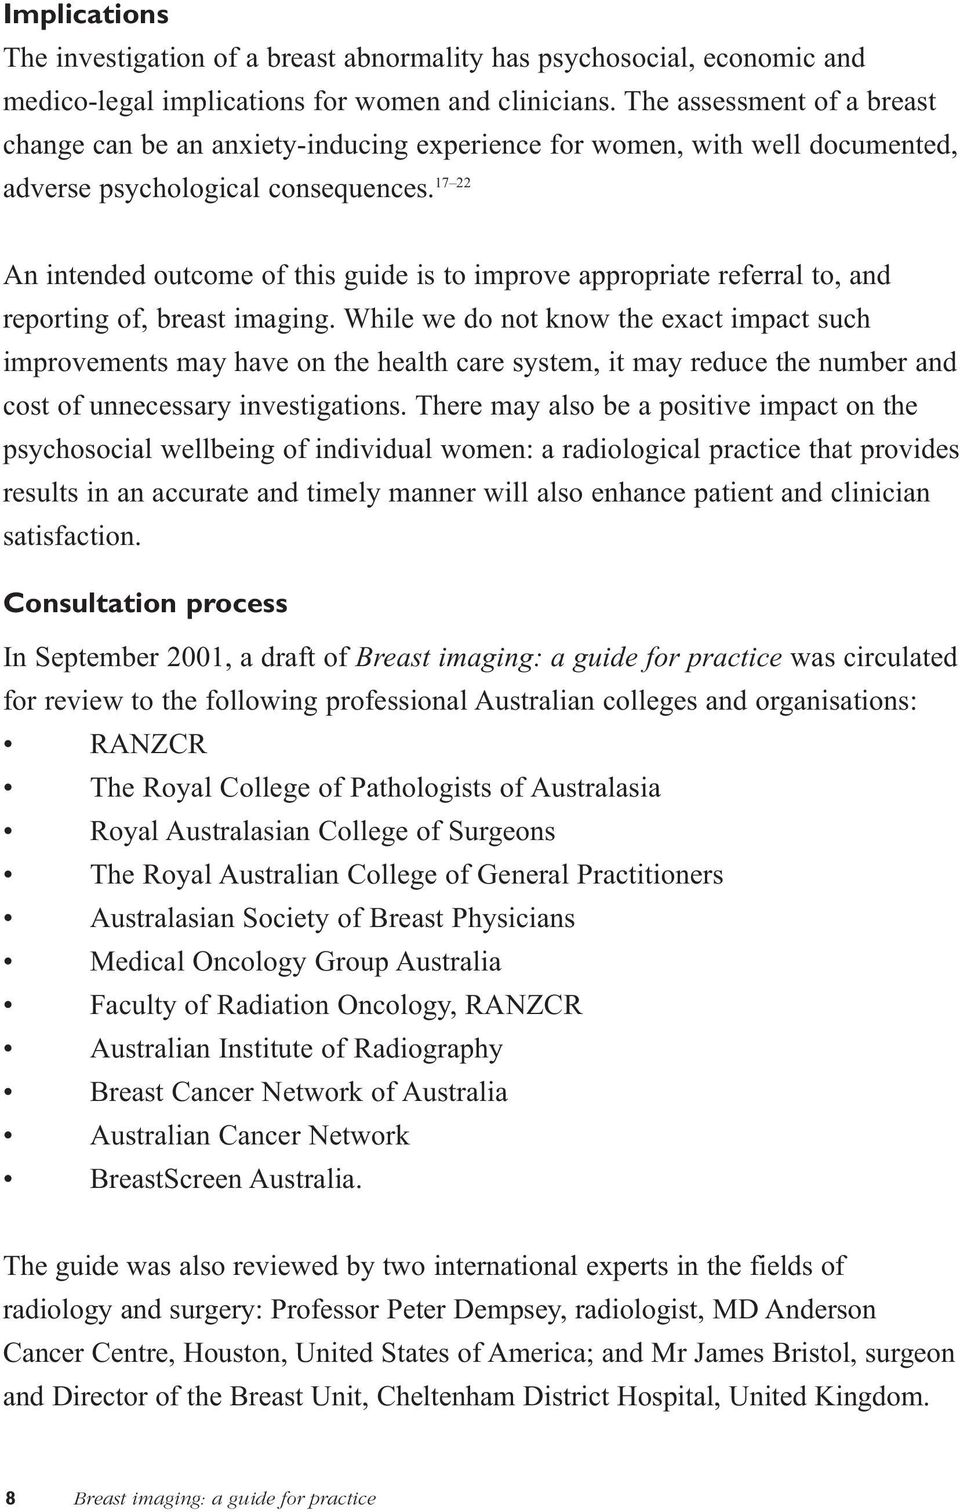 17 22 An intended outcome of this guide is to improve appropriate referral to, and reporting of, breast imaging.